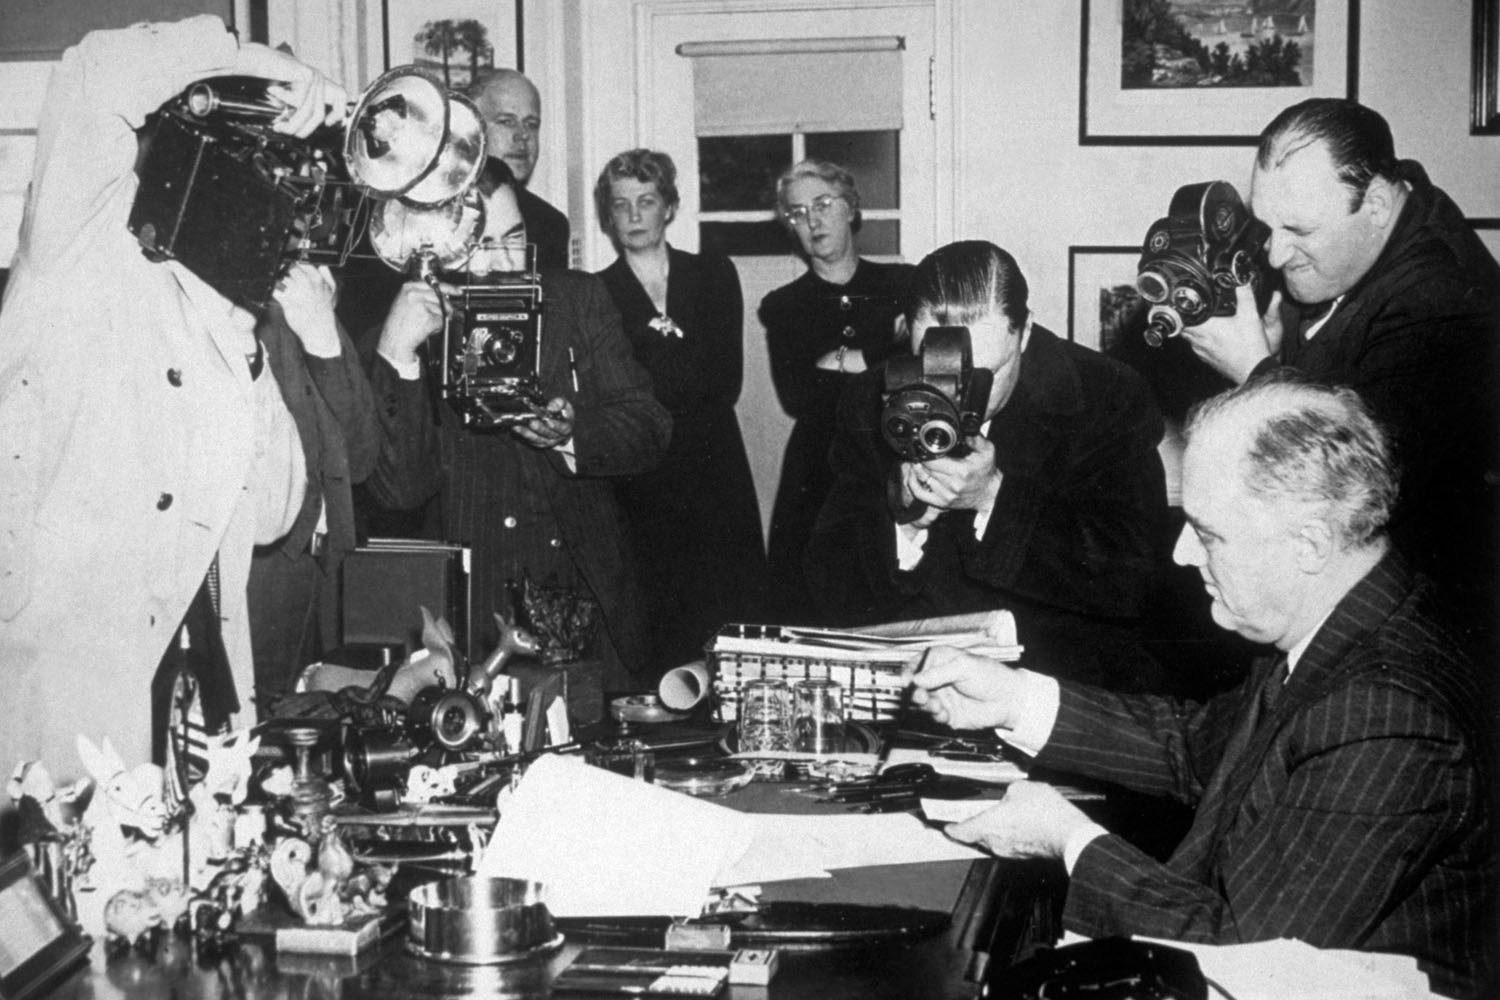 President Franklin D. Roosevelt, surrounded by photographers, signs the Lease-Lend Bill at the White House, March 11, 1941.